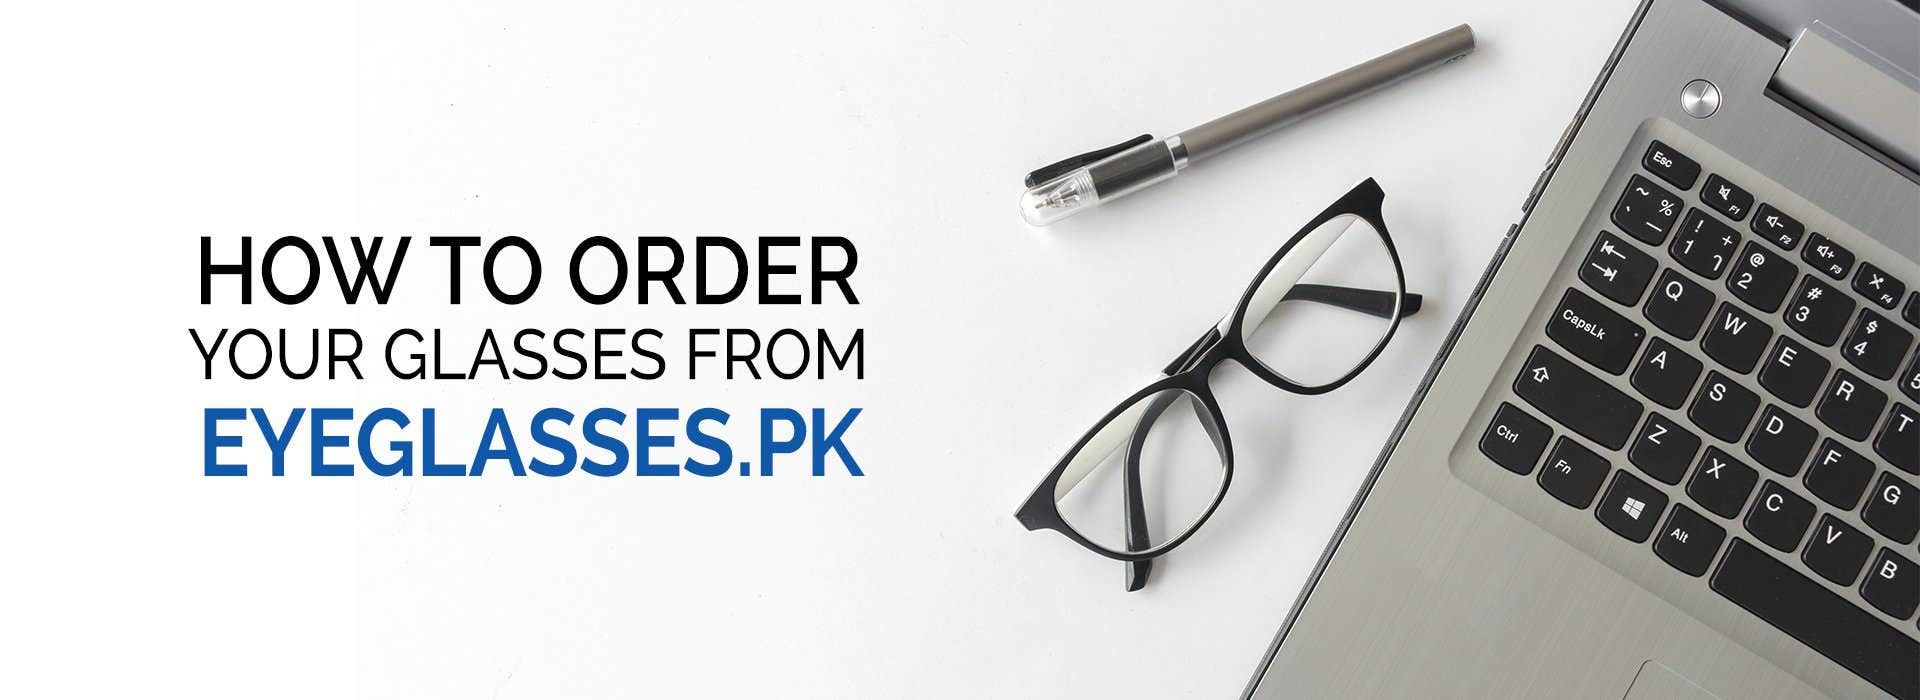 HOW TO ORDER YOUR GLASSES FROM EYEGLASSES PK